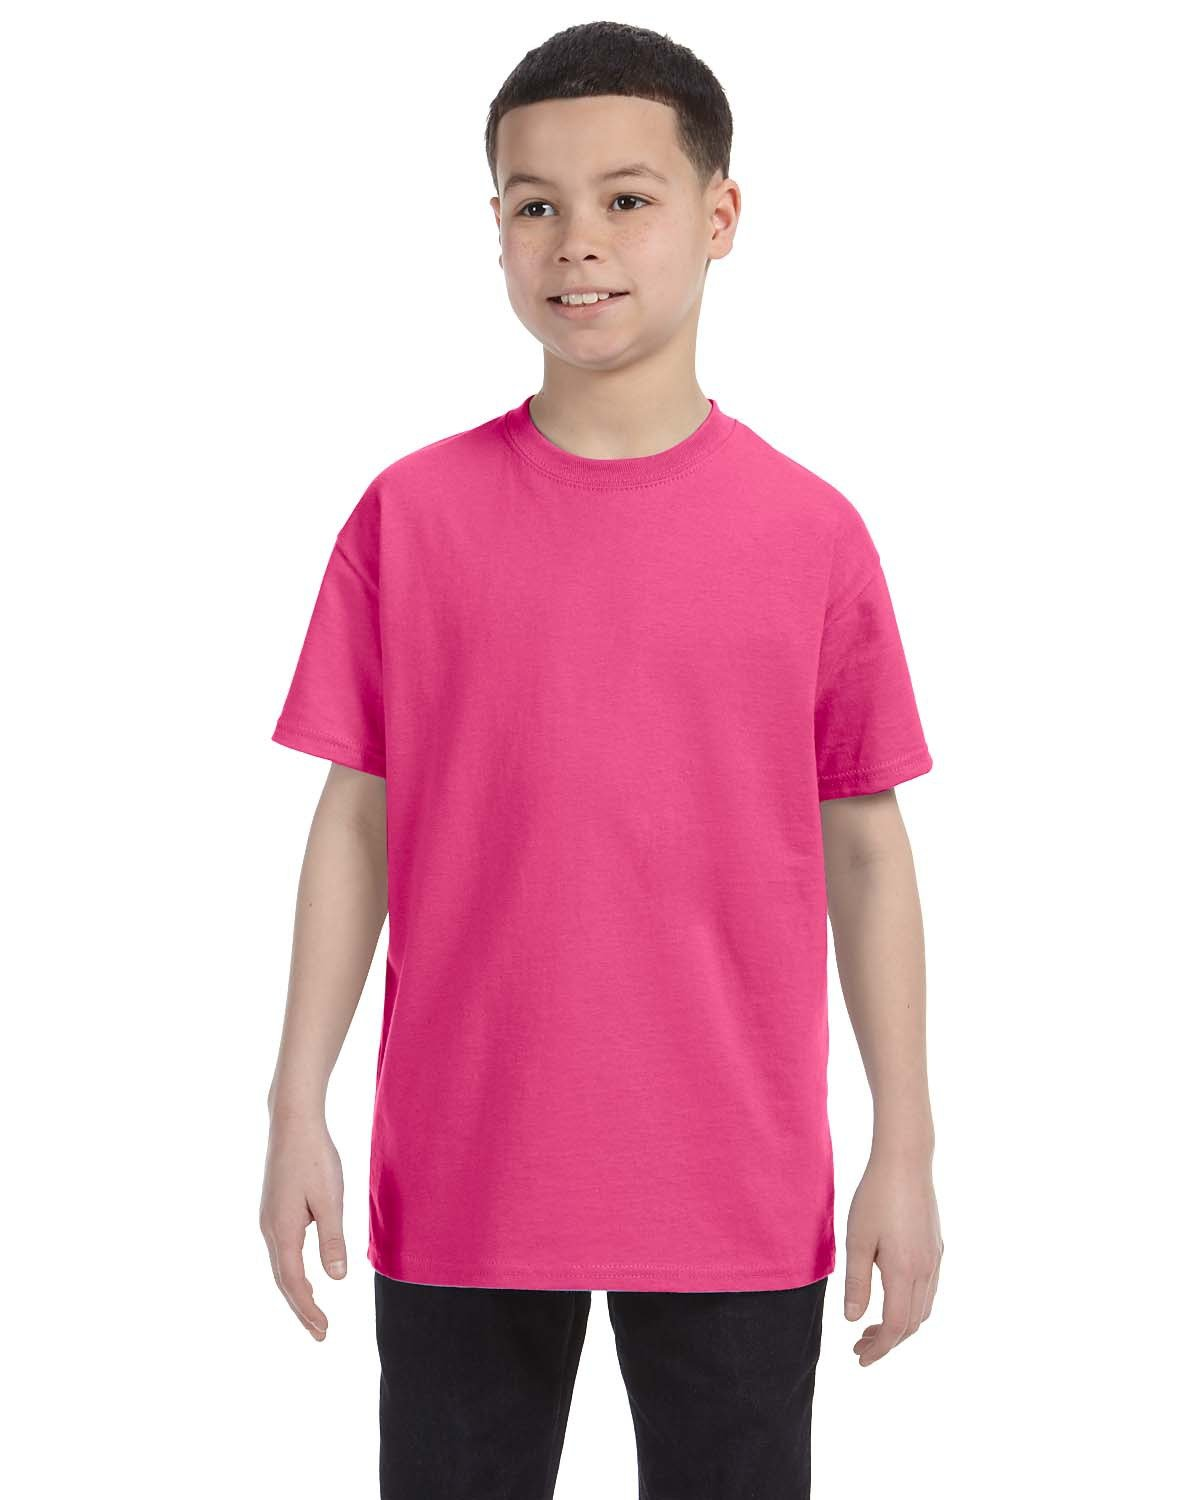 Hanes Youth Authentic-T T-Shirt WOW PINK